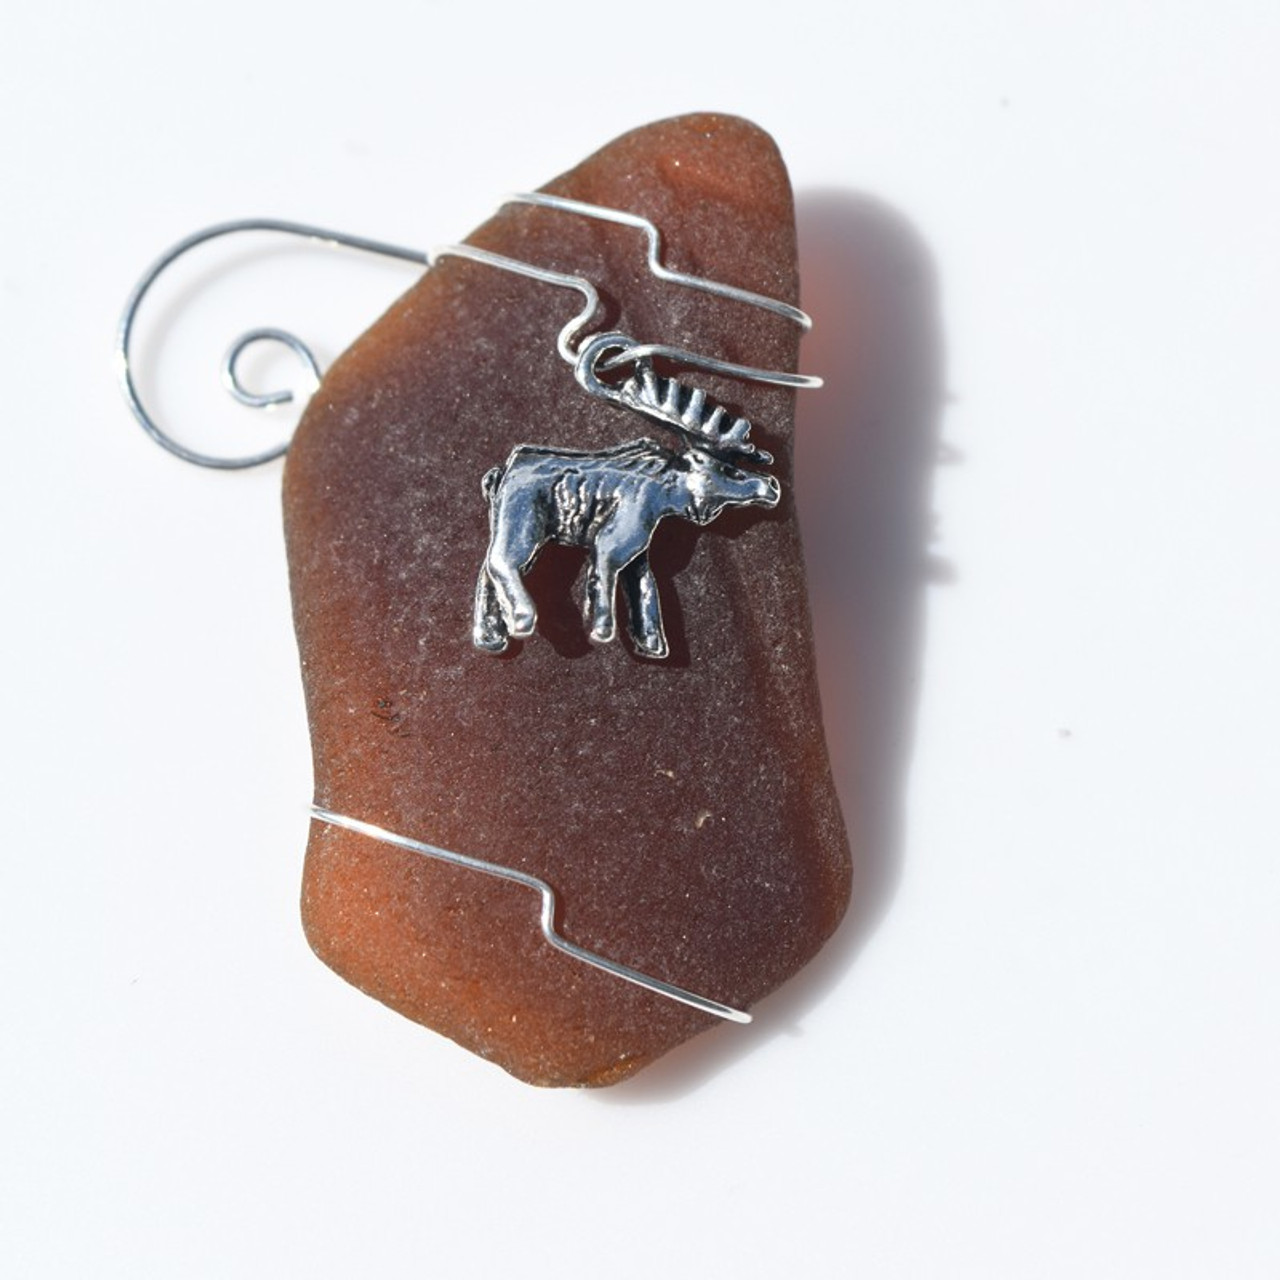 Wire Wrapepd Moose Ornament